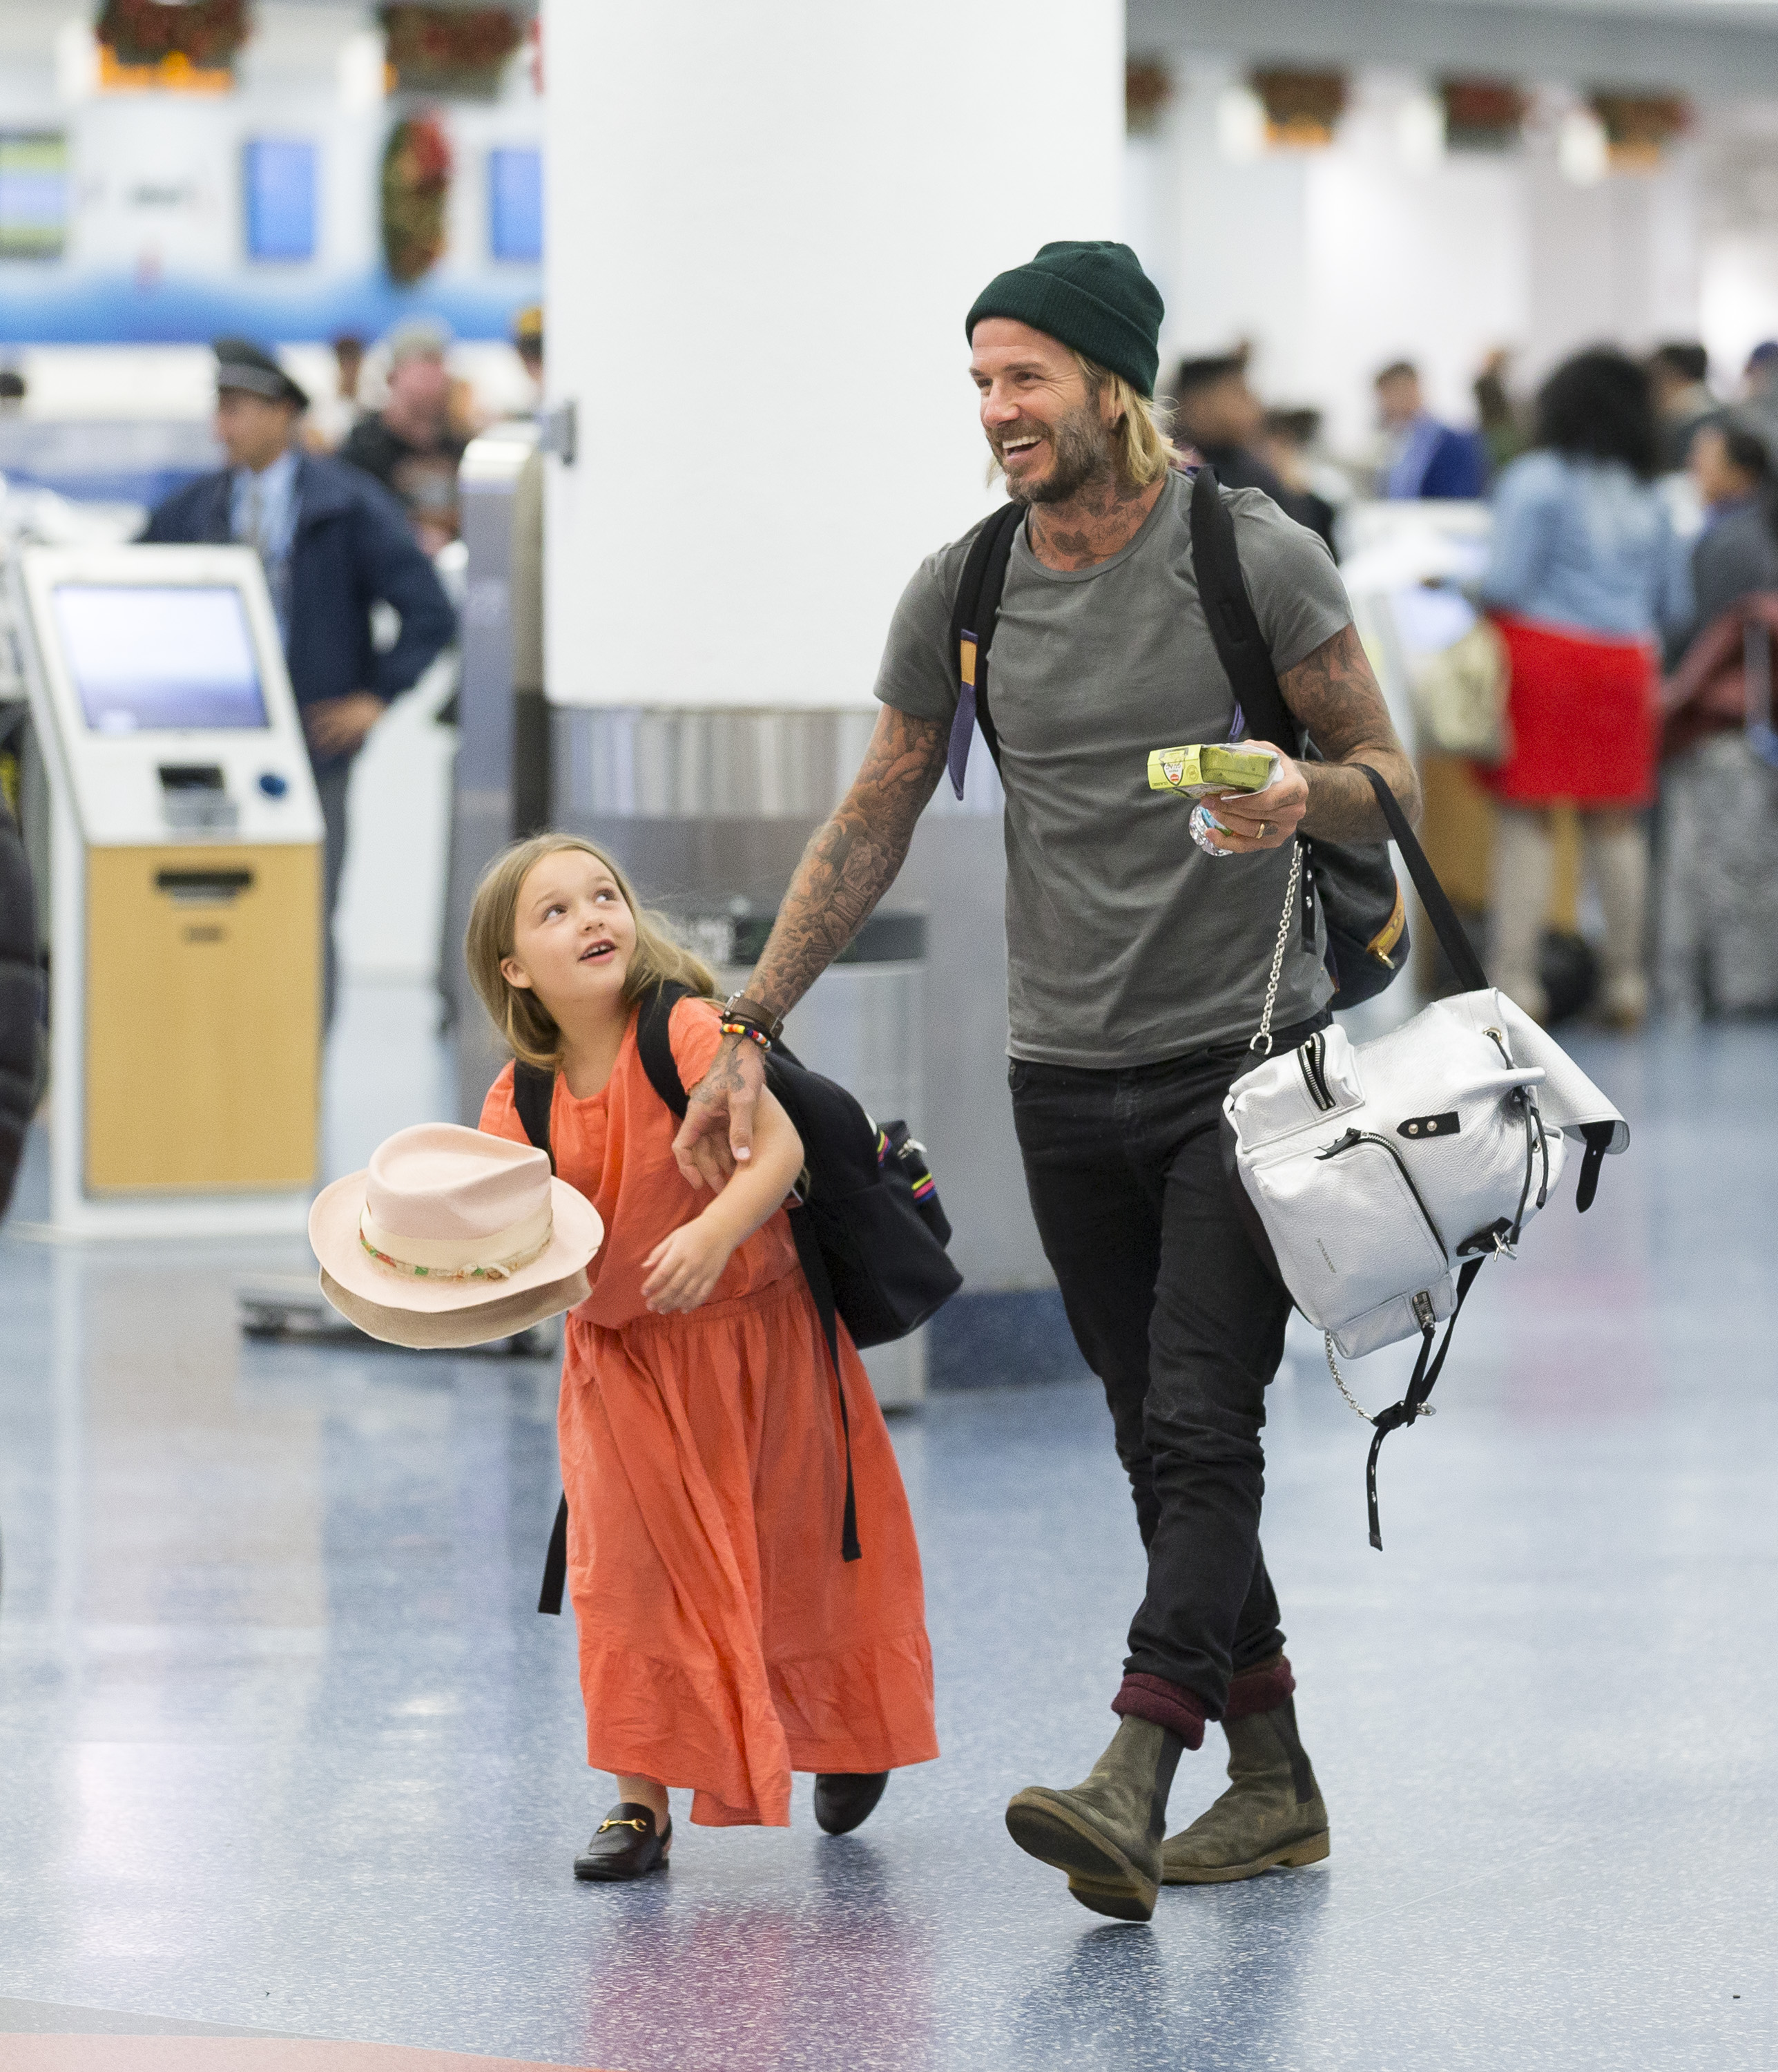 EXCLUSIVE: **PREMIUM EXCLUSIVE RATES APPLY**NO WEB UNTIL 2PM GMT SATURDAY JAN 6, 2018** David and Victoria Beckham and their four children were spotted checking into a flight at Miami airport after enjoying a luxurious Caribbean holiday. The Beckhams arrived in Miami two hours earlier on a private jet after a New Years break at an exclusive beachfront resort in the Turks and Caicos islands. David, 42, held hands and laughed with his cute daughter Harper, 6, as they transferred to a commercial flight after making a quick stop at the famous Cuban restaurant Versailles. Airport TSA security officers were delighted as they posed for selfies with the ex-footballer as the famous family - including sons Brooklyn, Romeo and Cruz - made their way through security screening. Little Harper proved she's a budding fashionista by wearing £235 Gucci Princetown slippers. Her fashion designer mother Victoria, 43, hid behind her trademark dark sunglasses and didn't get involved in taking selfies with staff. <P> Pictured: David Beckham, Harper <B>Ref: SPL1641864  050118   EXCLUSIVE</B><BR/> Picture by: Splash News<BR/> </P><P> <B>Splash News and Pictures</B><BR/> Los Angeles:310-821-2666<BR/> New York:212-619-2666<BR/> London:870-934-2666<BR/> <span id=